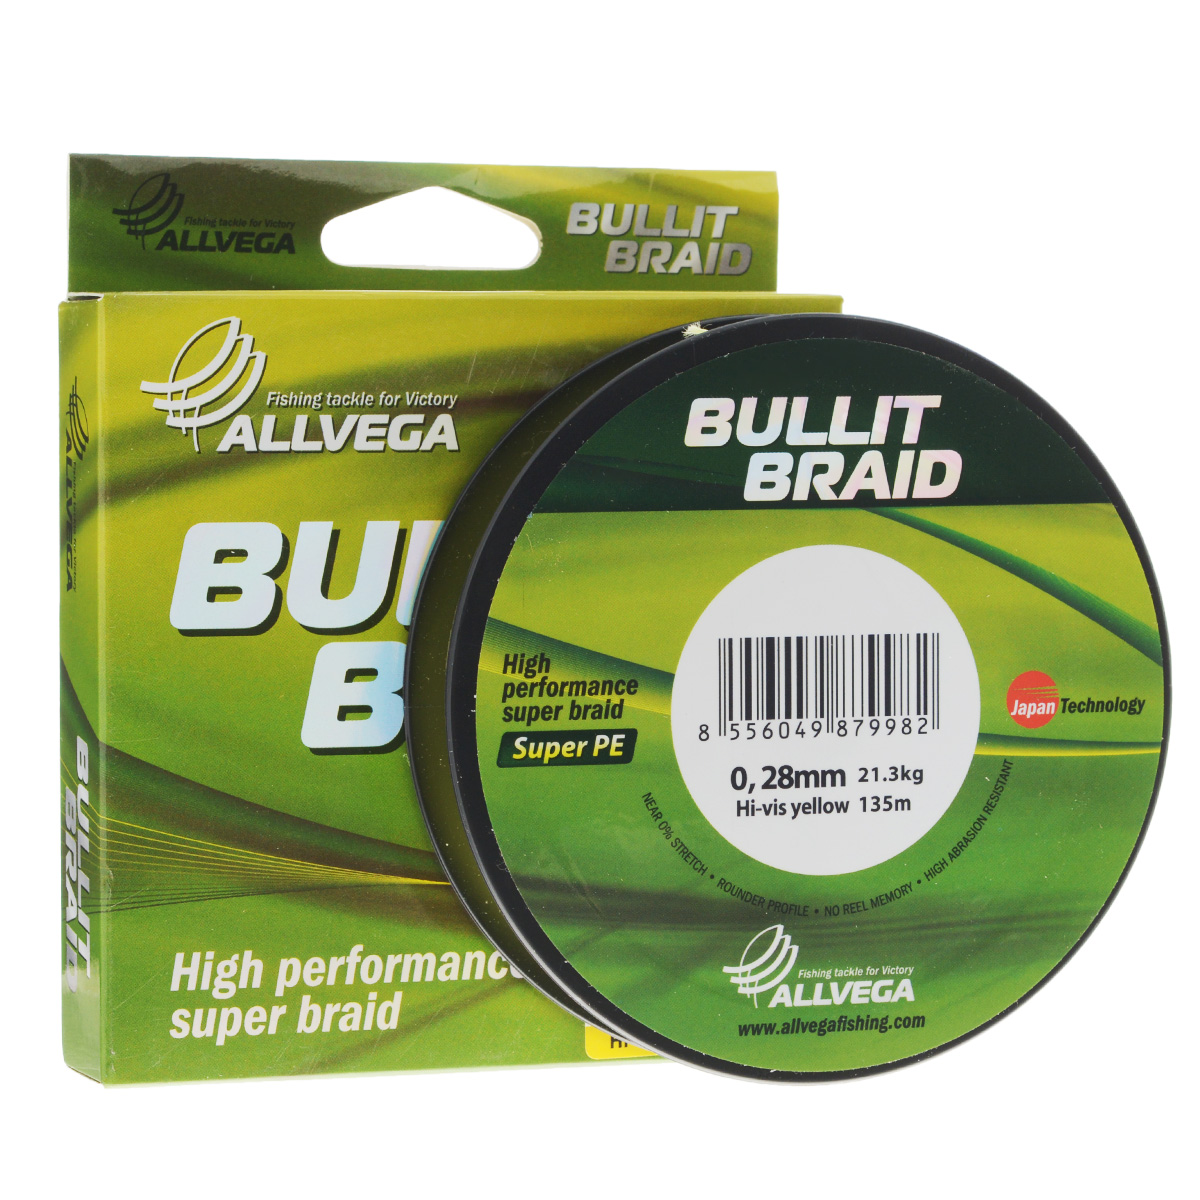 Леска плетеная Allvega Bullit Braid, цвет: ярко-желтый, 135 м, 0,28 мм, 21,3 кг